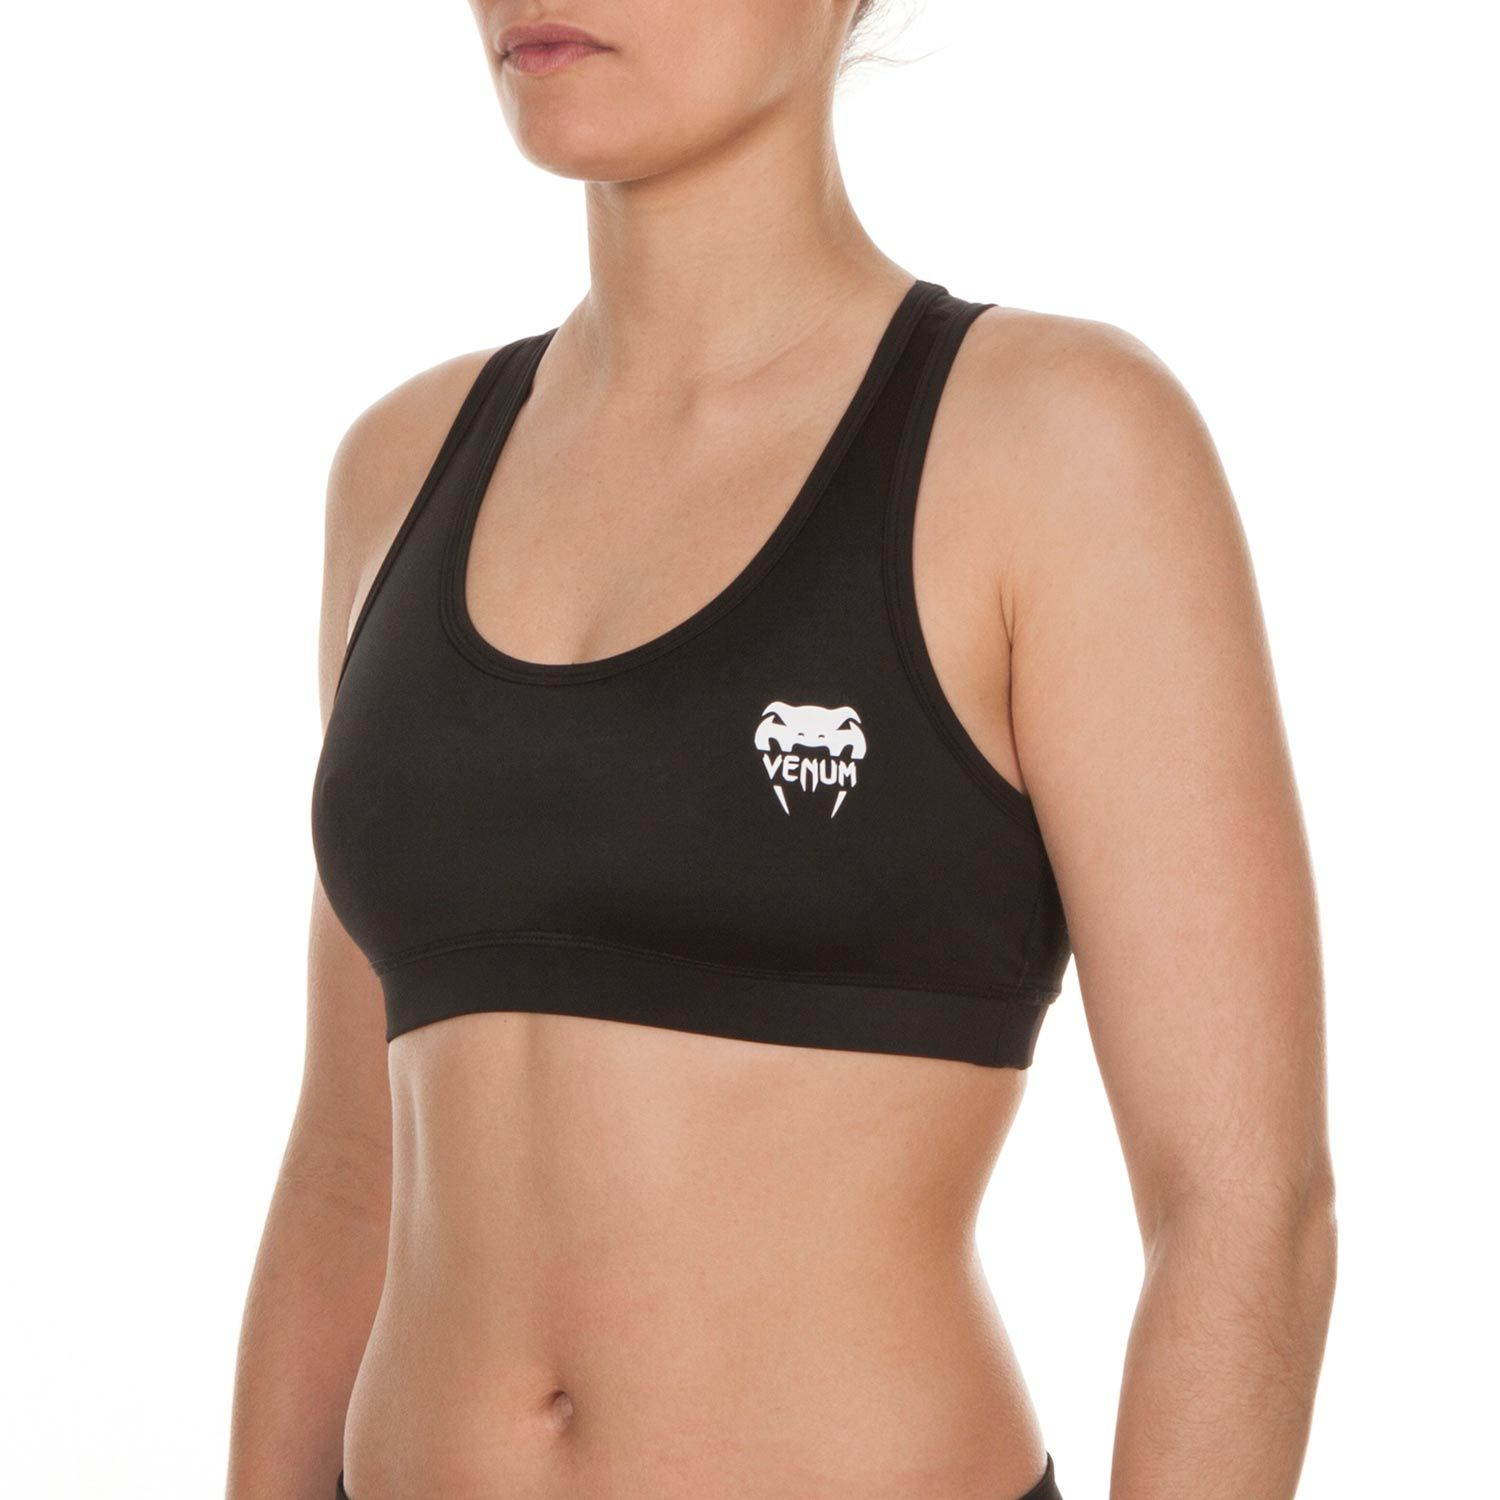 Venum Essential Sports Bra - Black